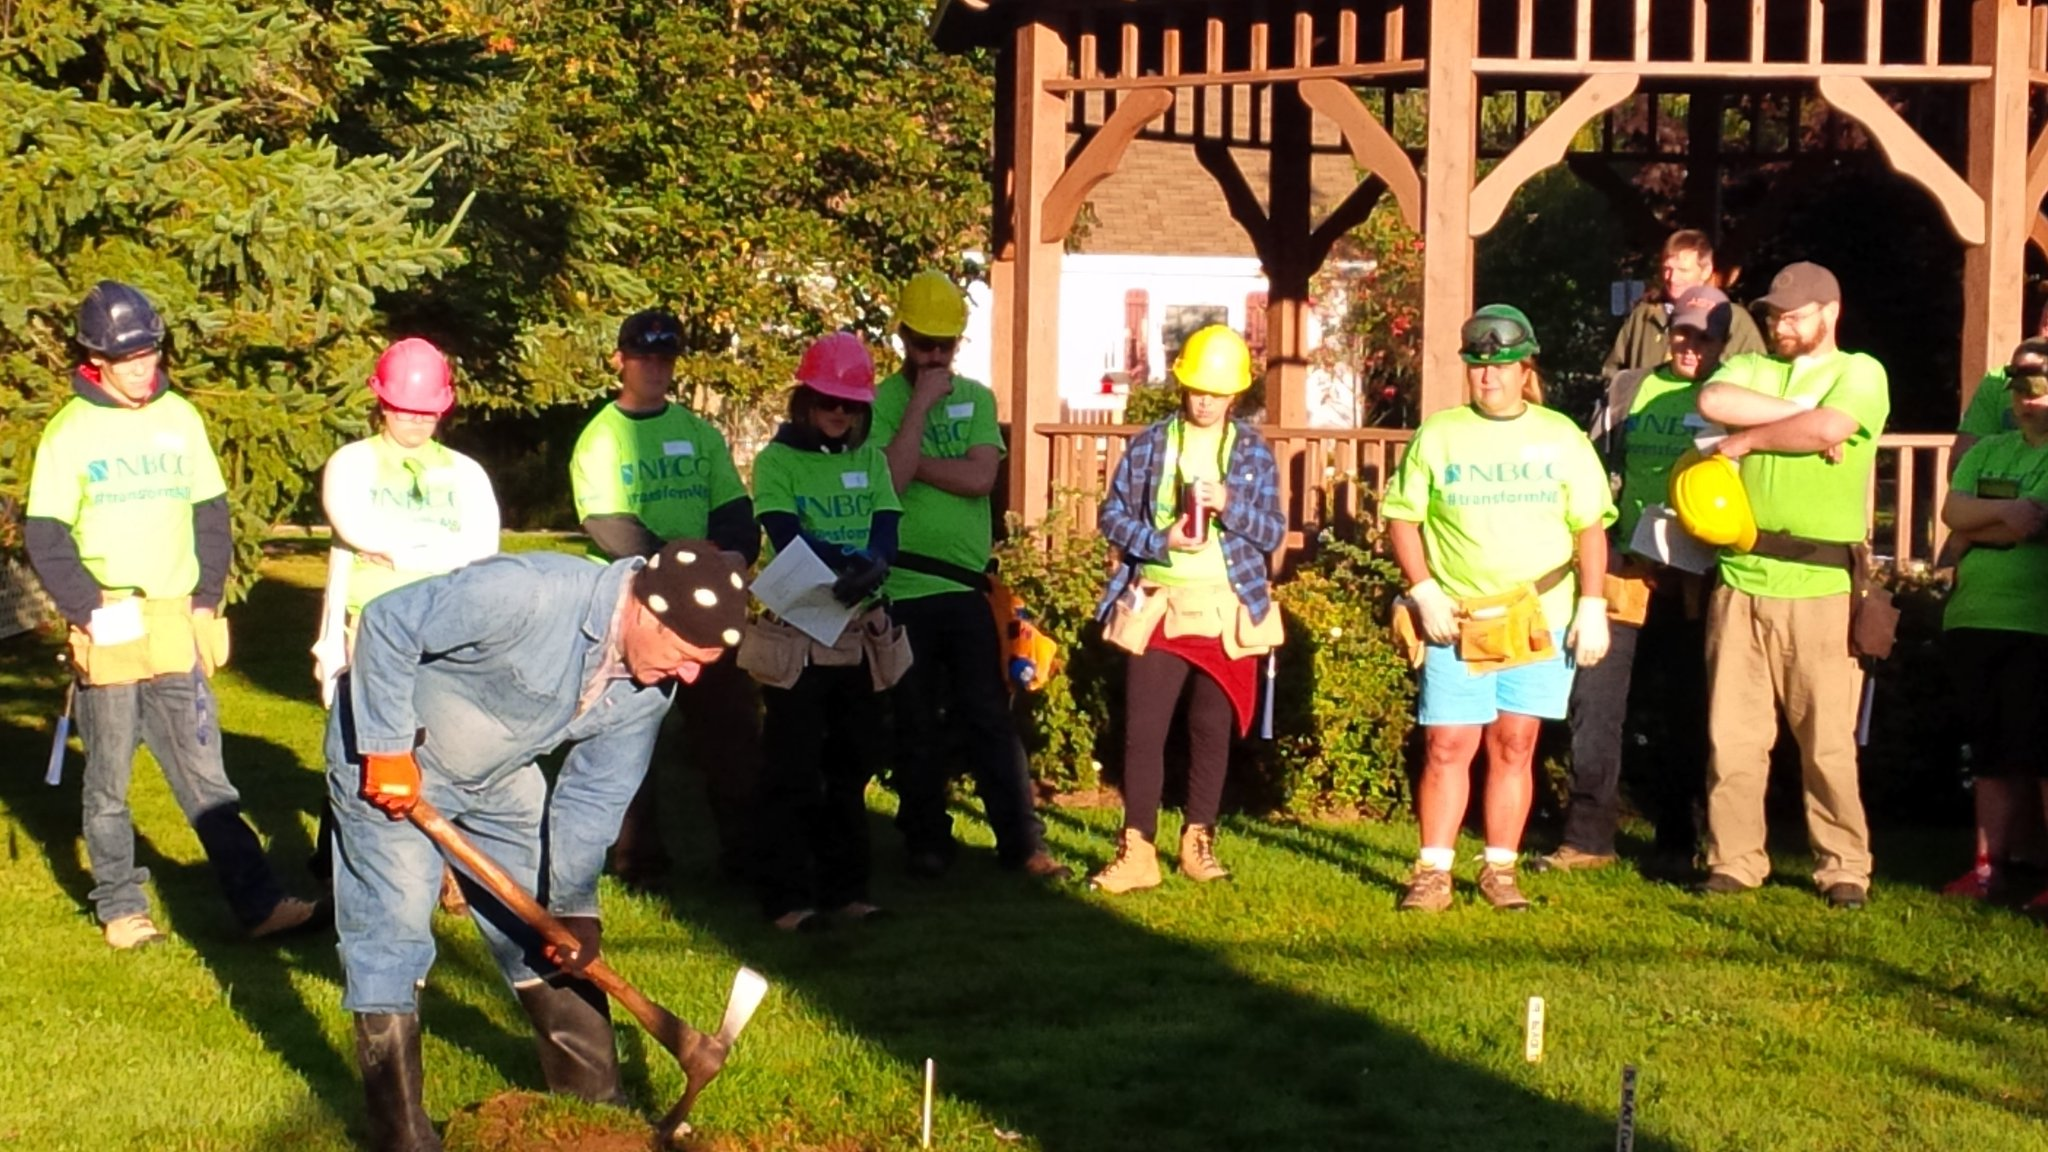 Our day begins planting fruit trees, shrubs & herb - our STA Tree Planting Committee! @myNBCC #transformnb https://t.co/nEF1j7mkaf